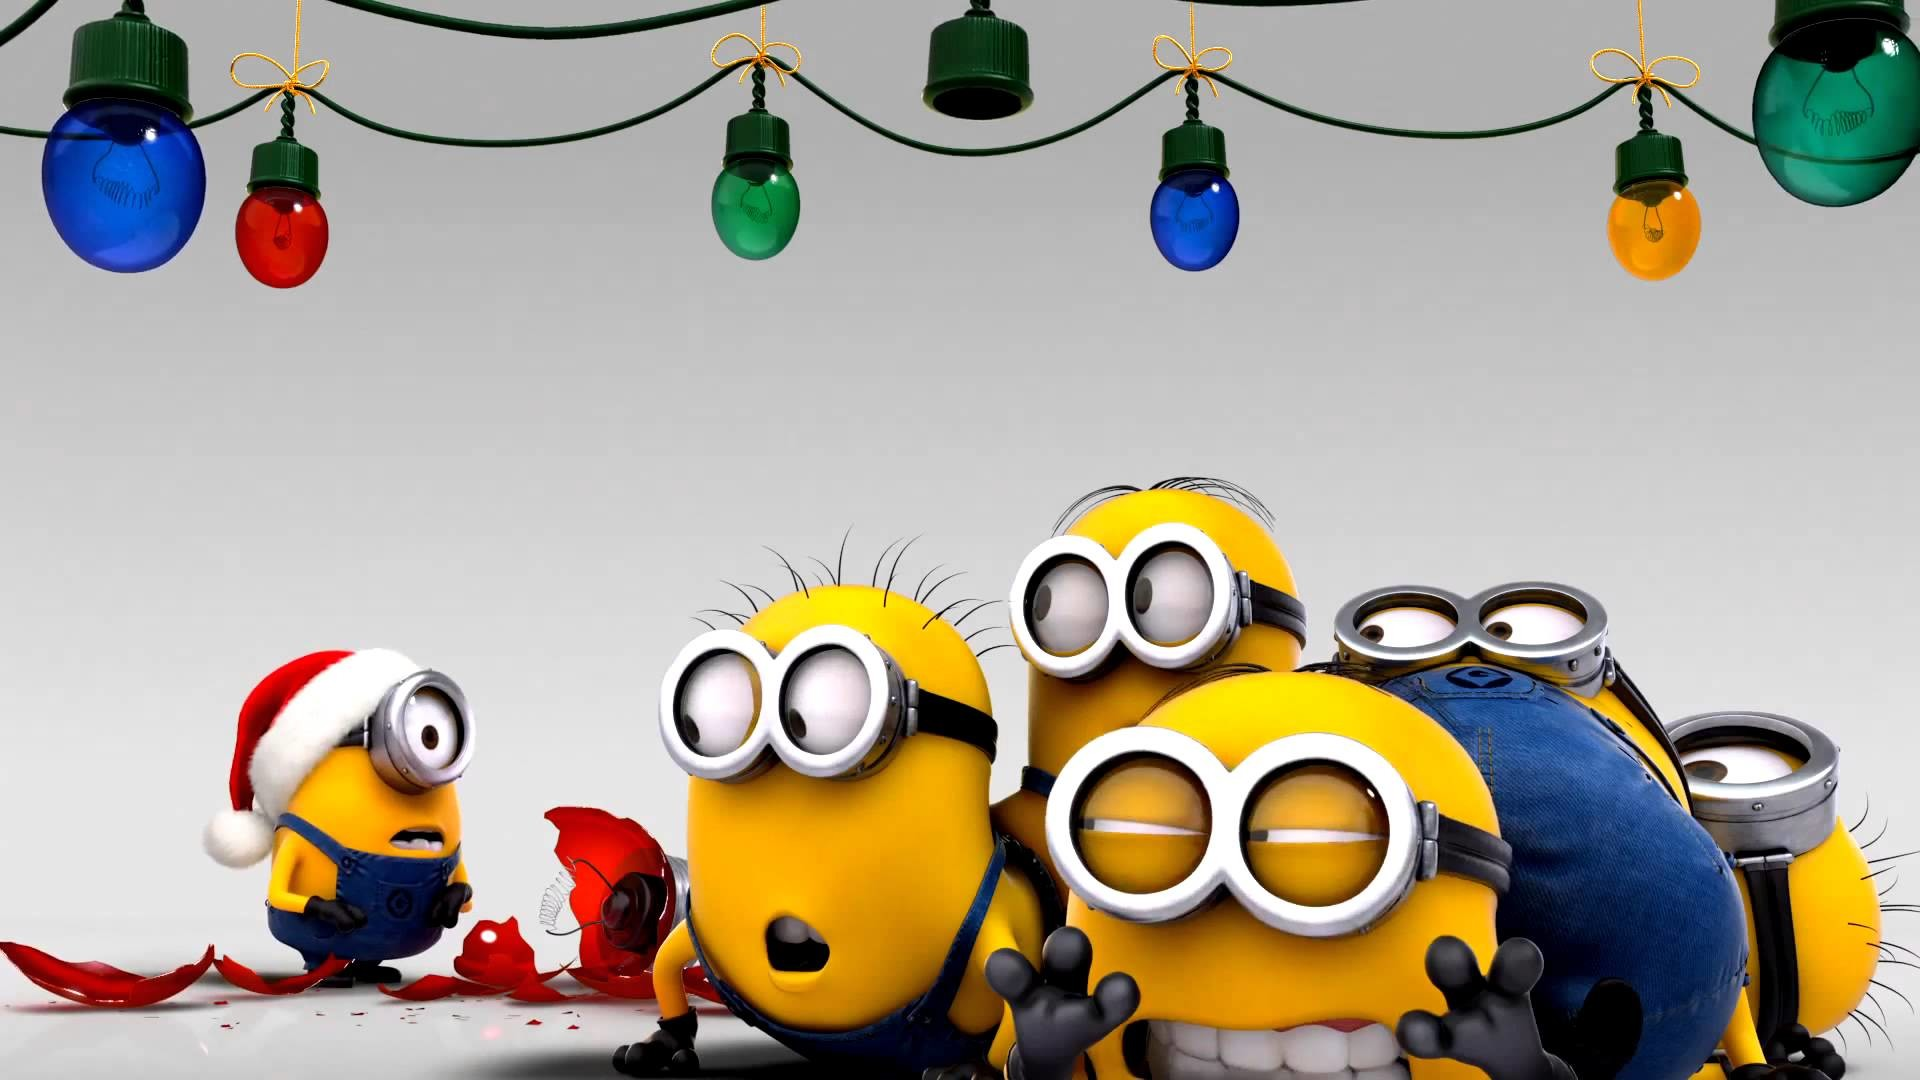 55 best Minions images on Pinterest | Image, The minions and Minion movie